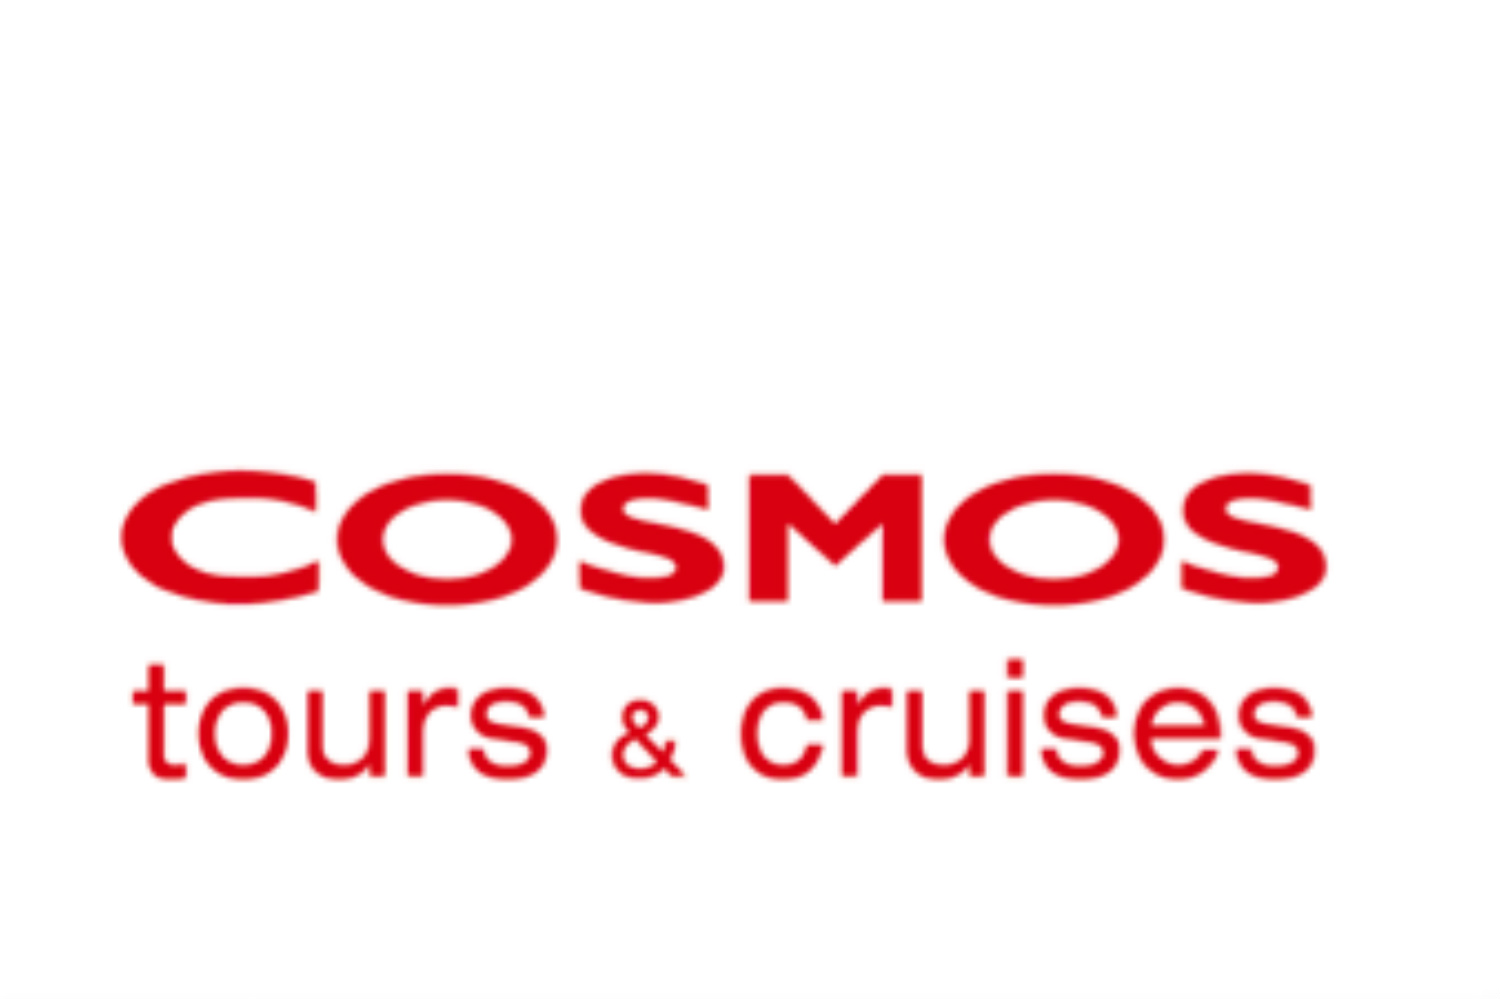 Cosmos Tours maintains its brand name in wake of Monarch decision